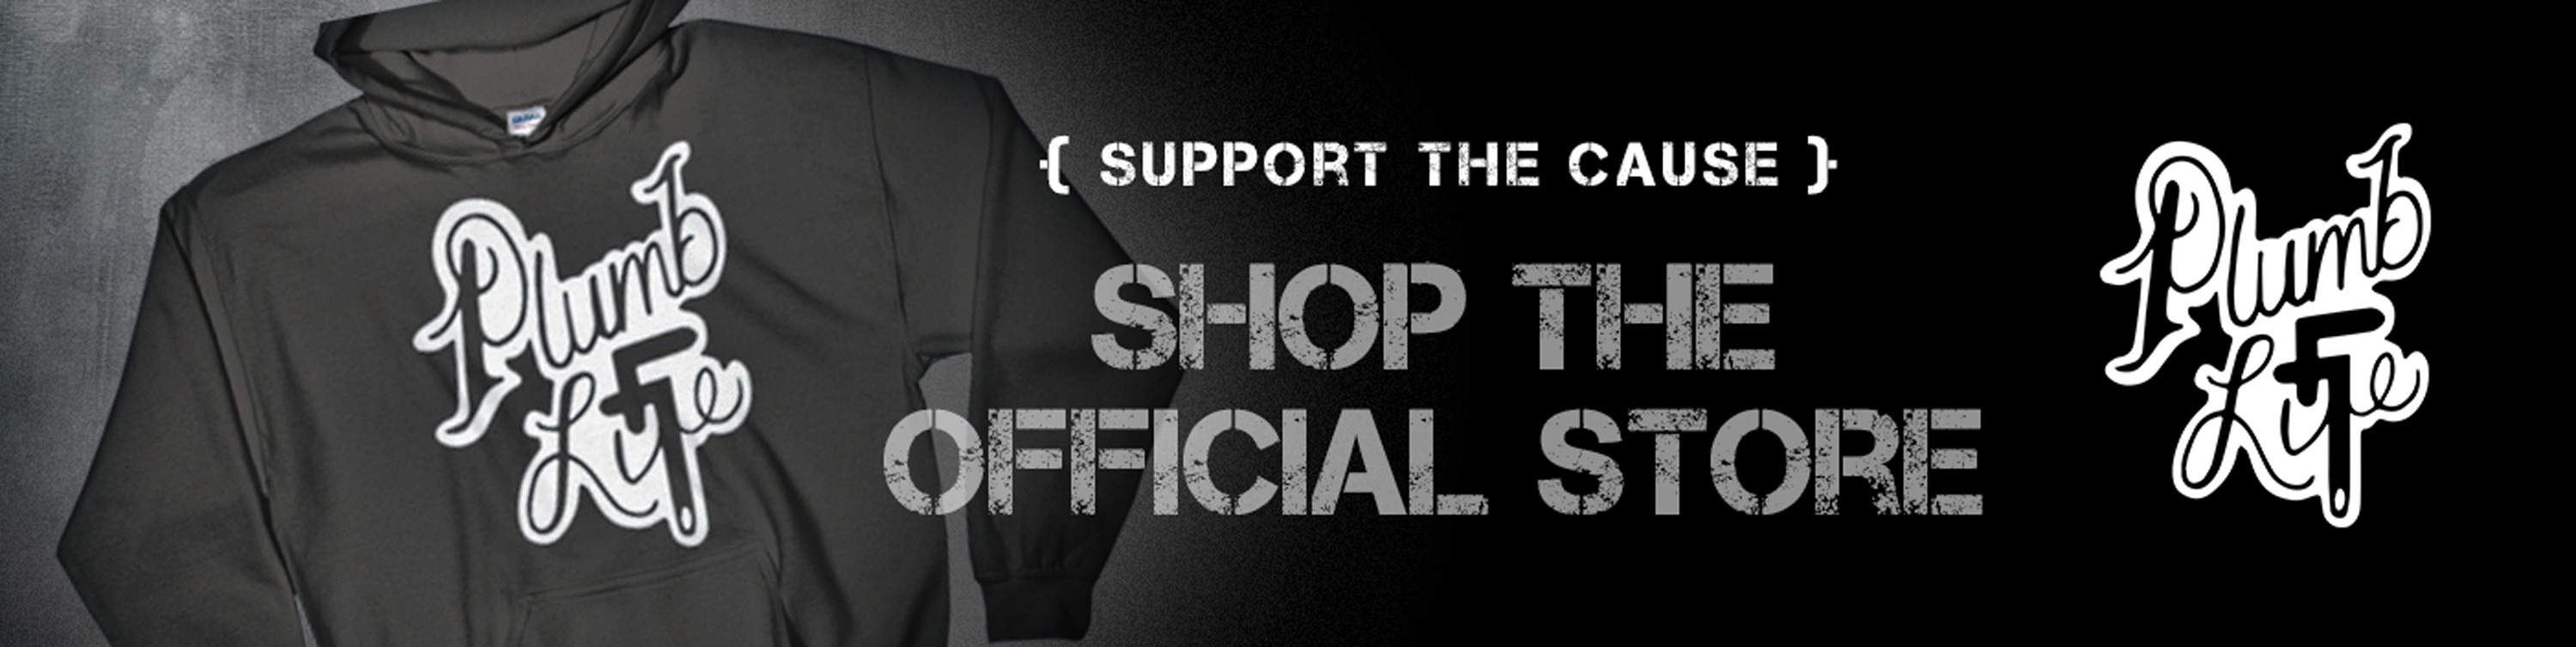 Shop The Official PlumbLife Store to Support The Mission